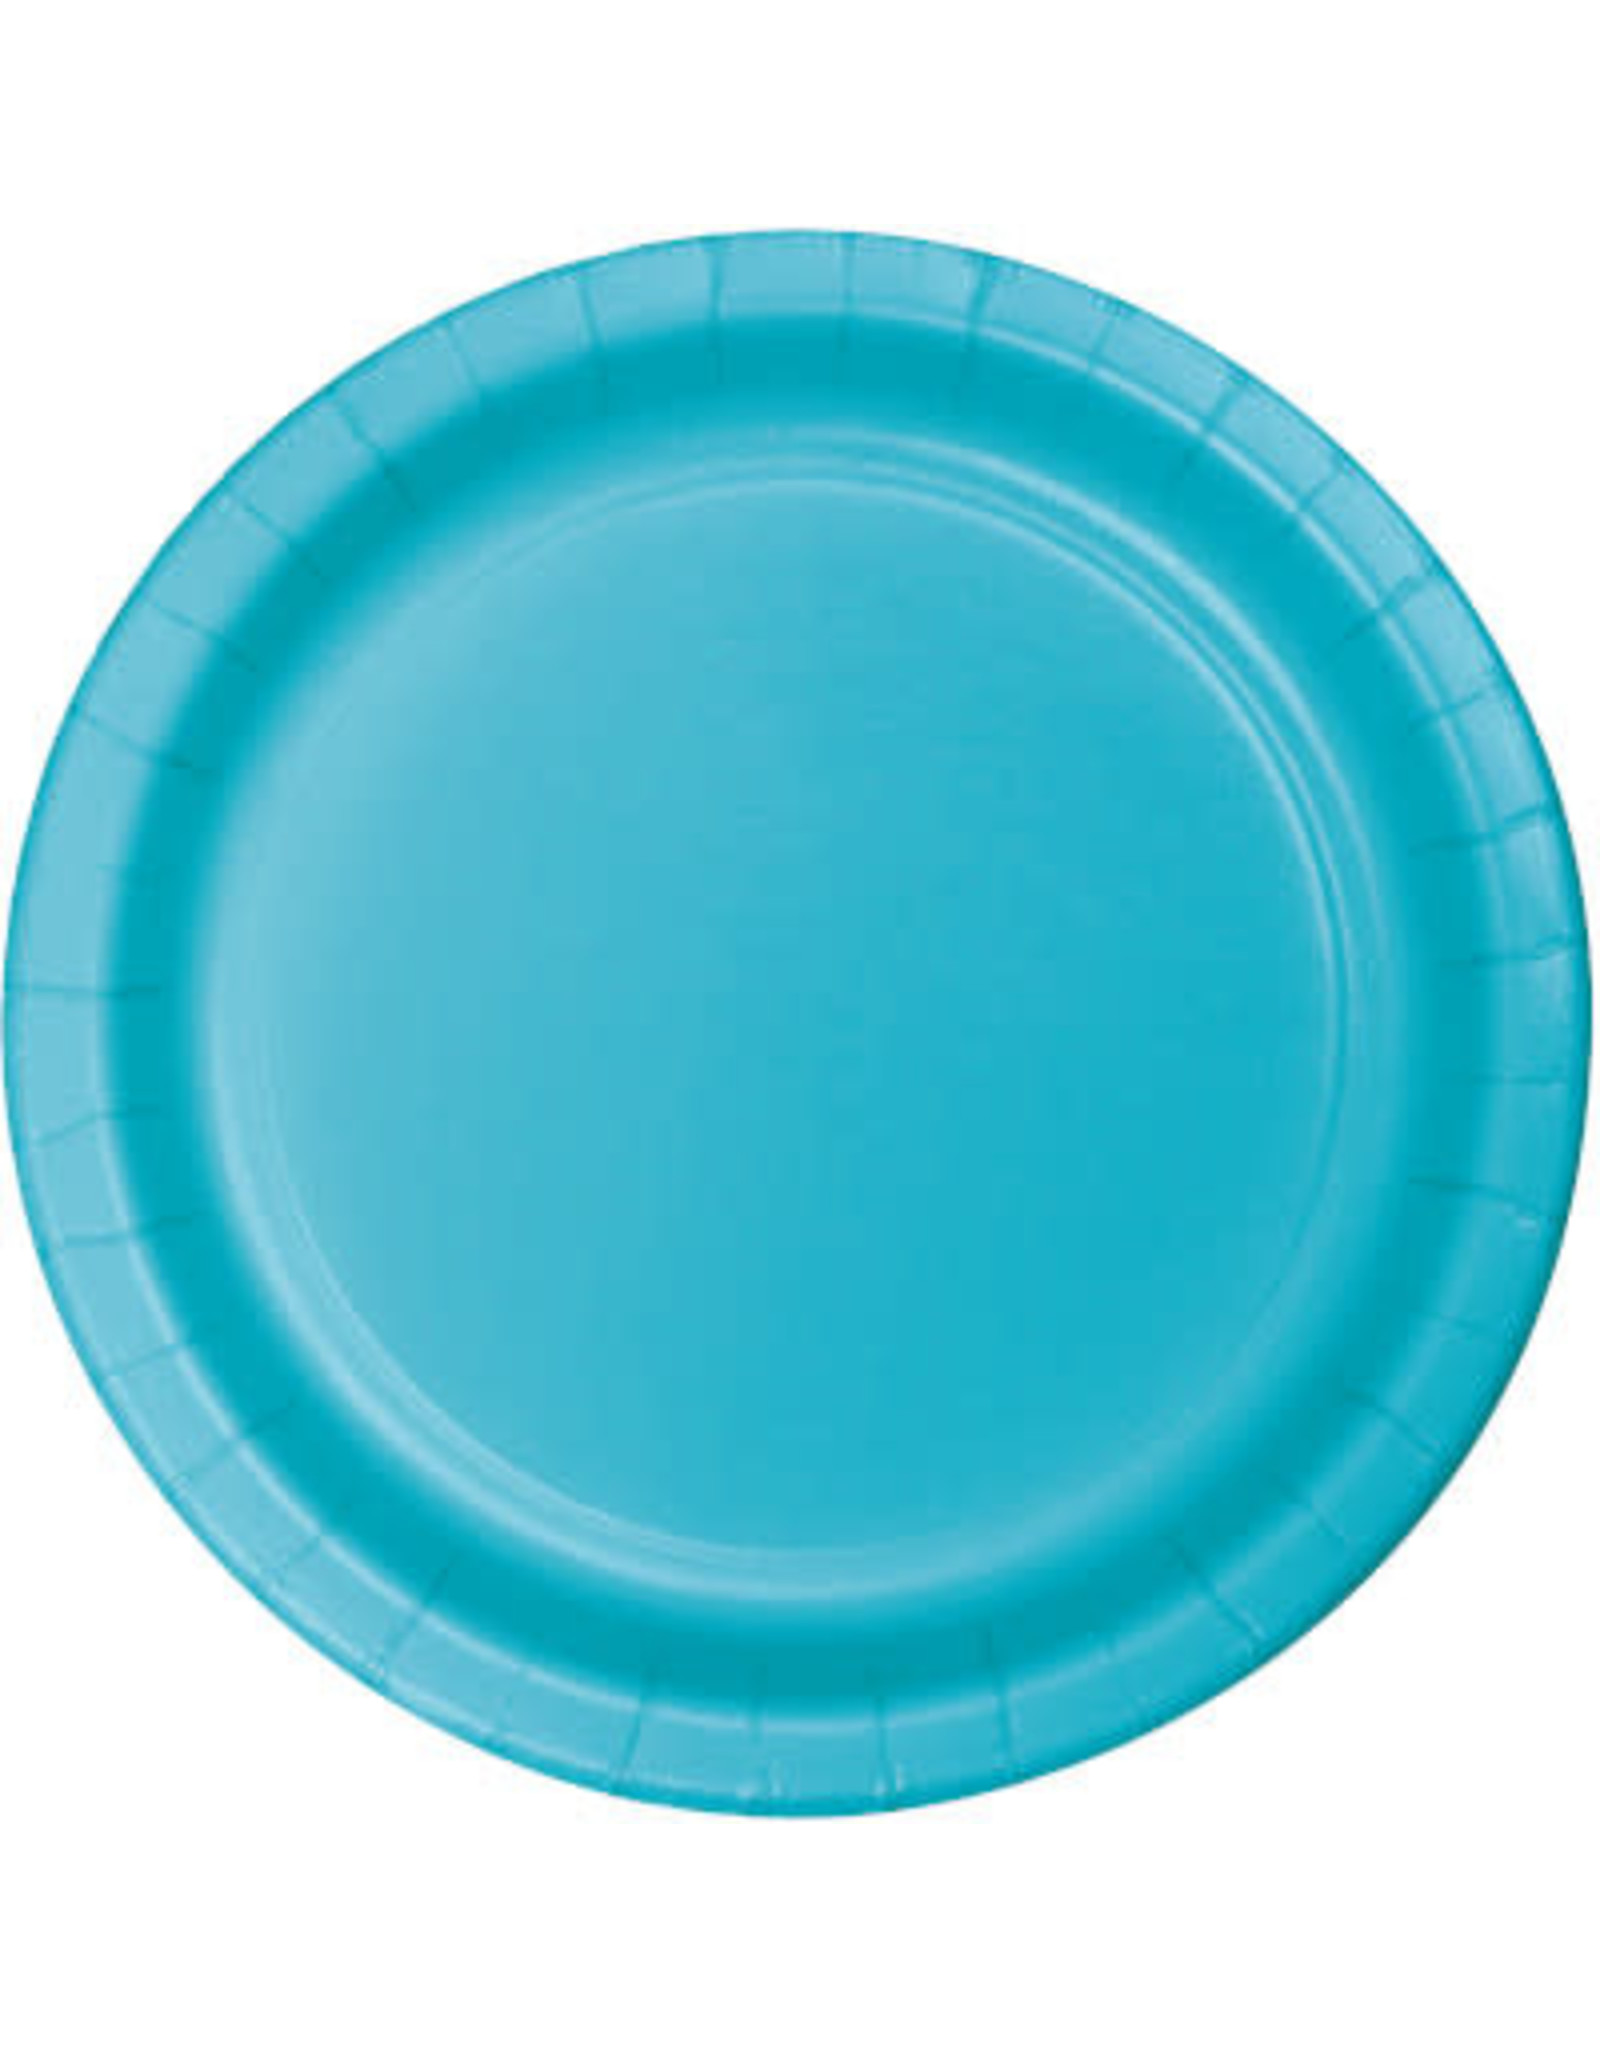 Touch of Color BERMUDA BLUE DESSERT PLATES